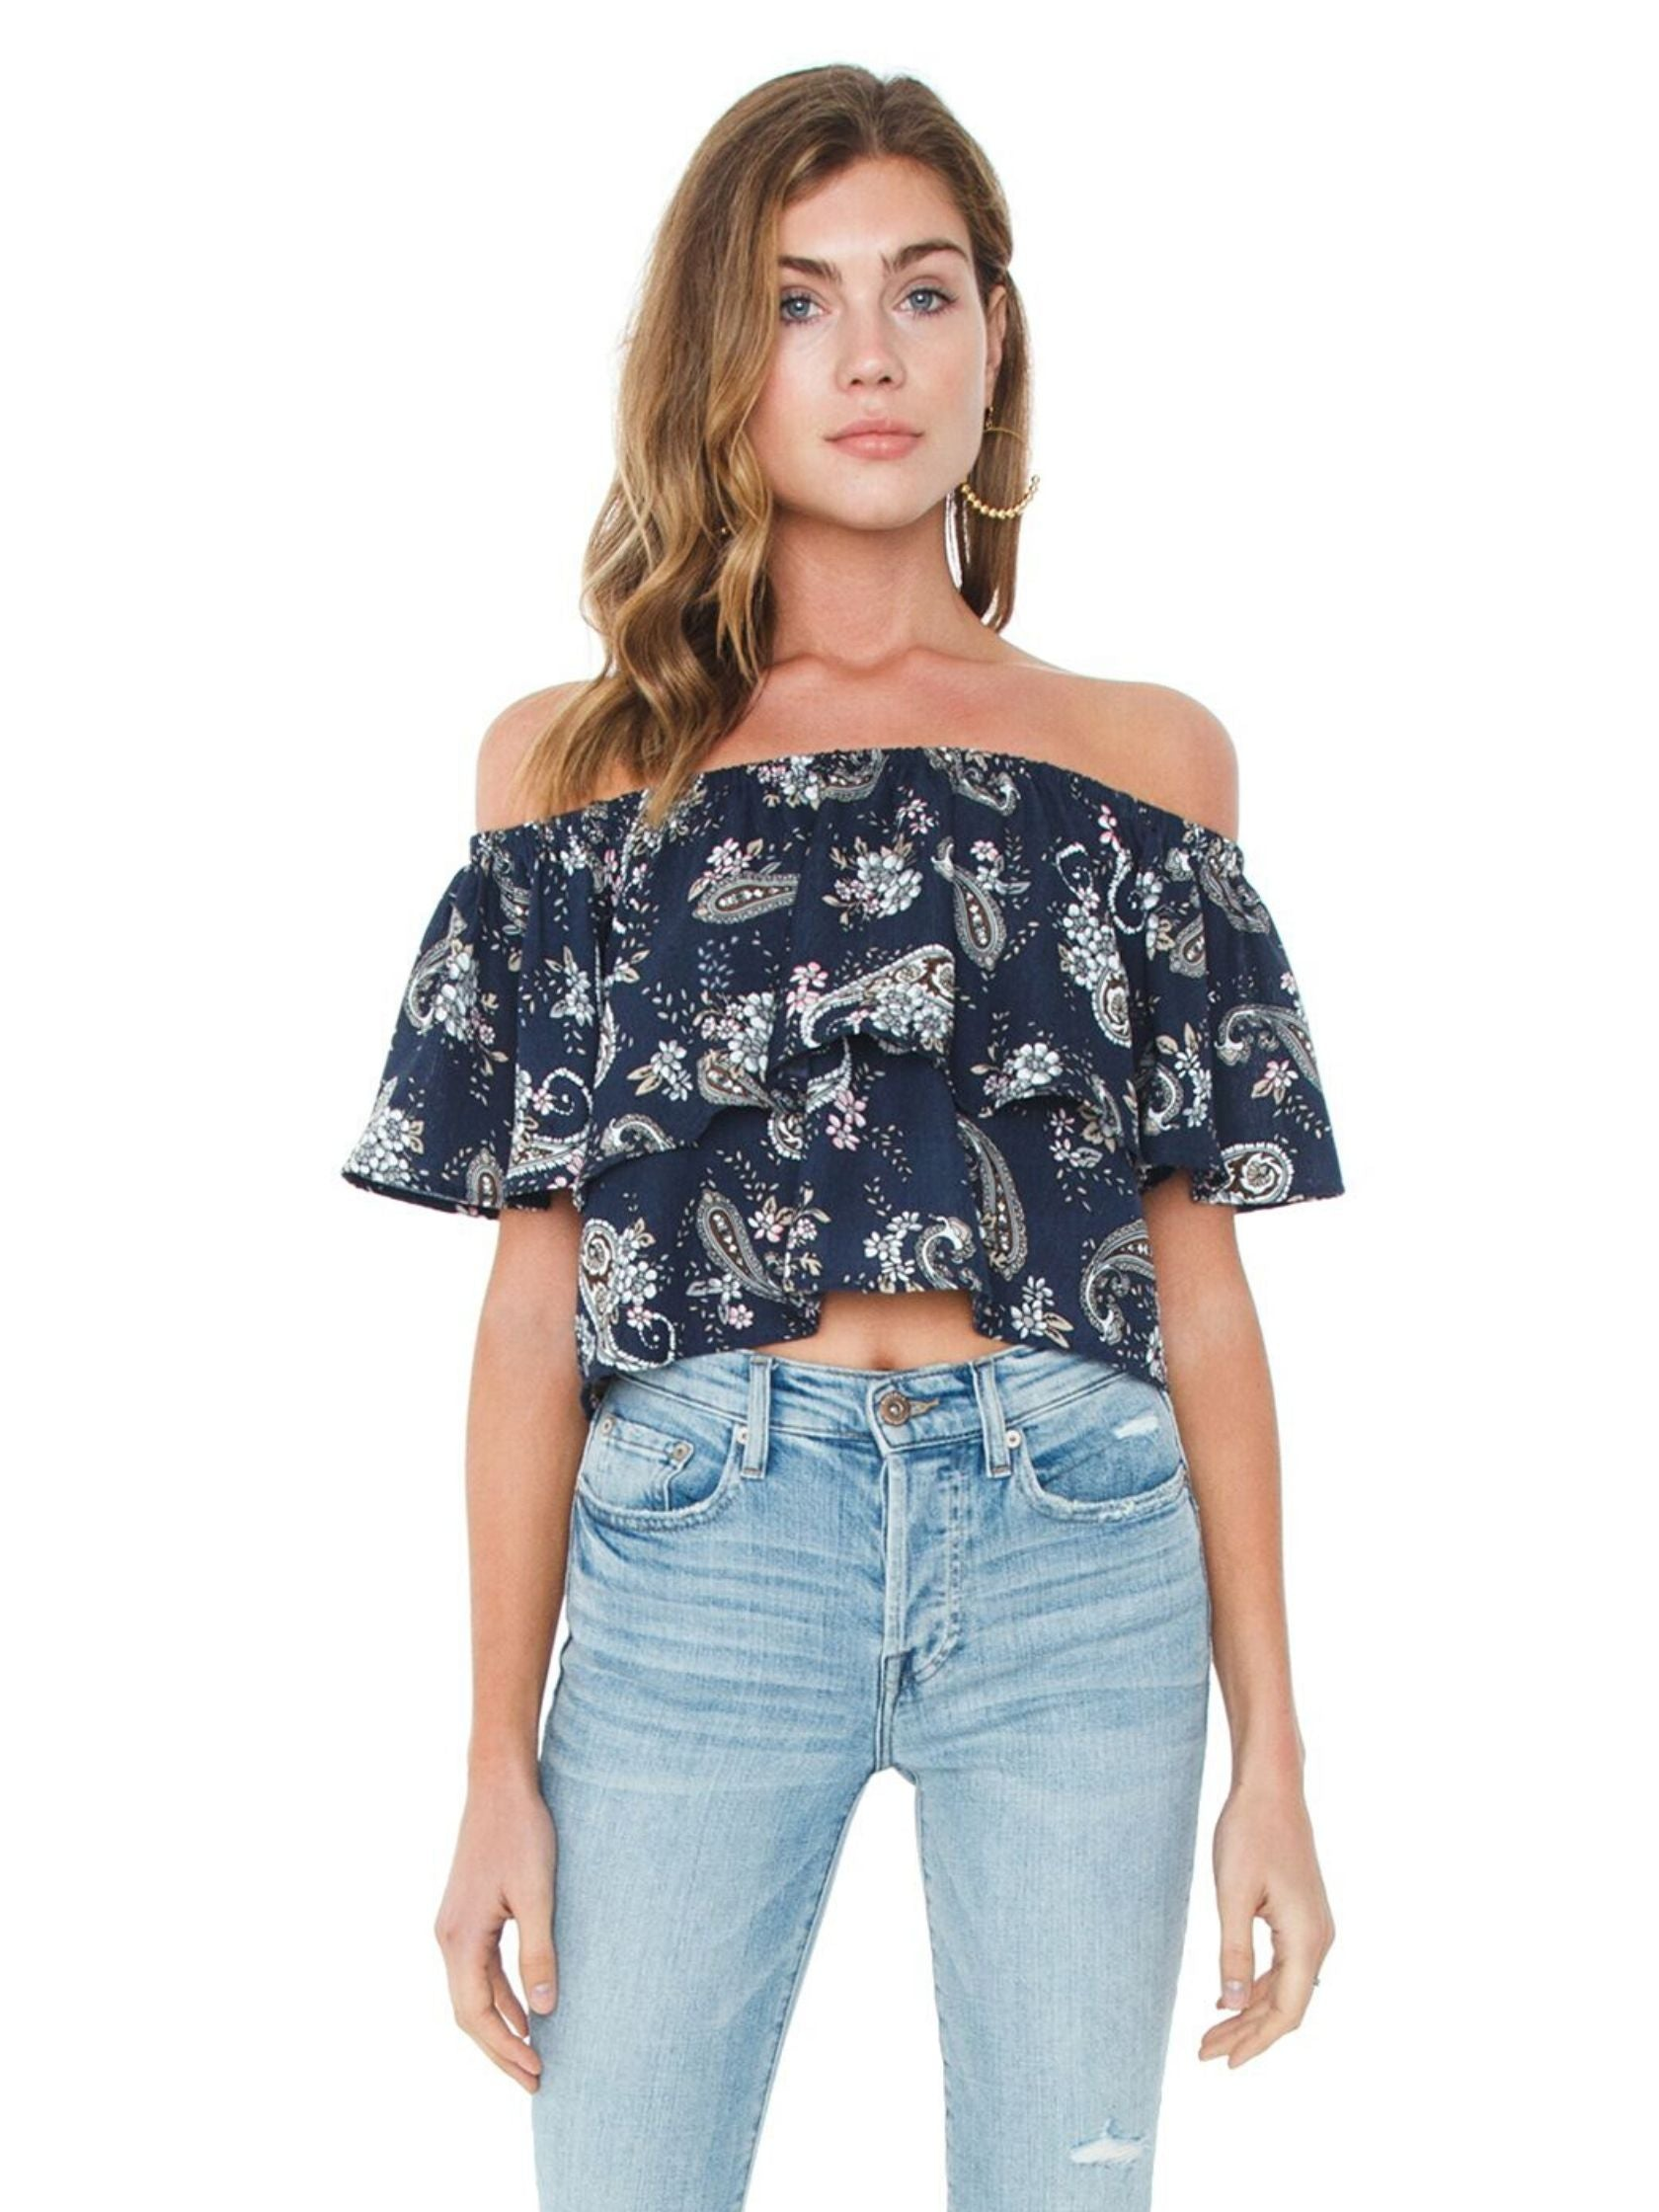 Woman wearing a top rental from J.O.A. called Off Shoulder Top